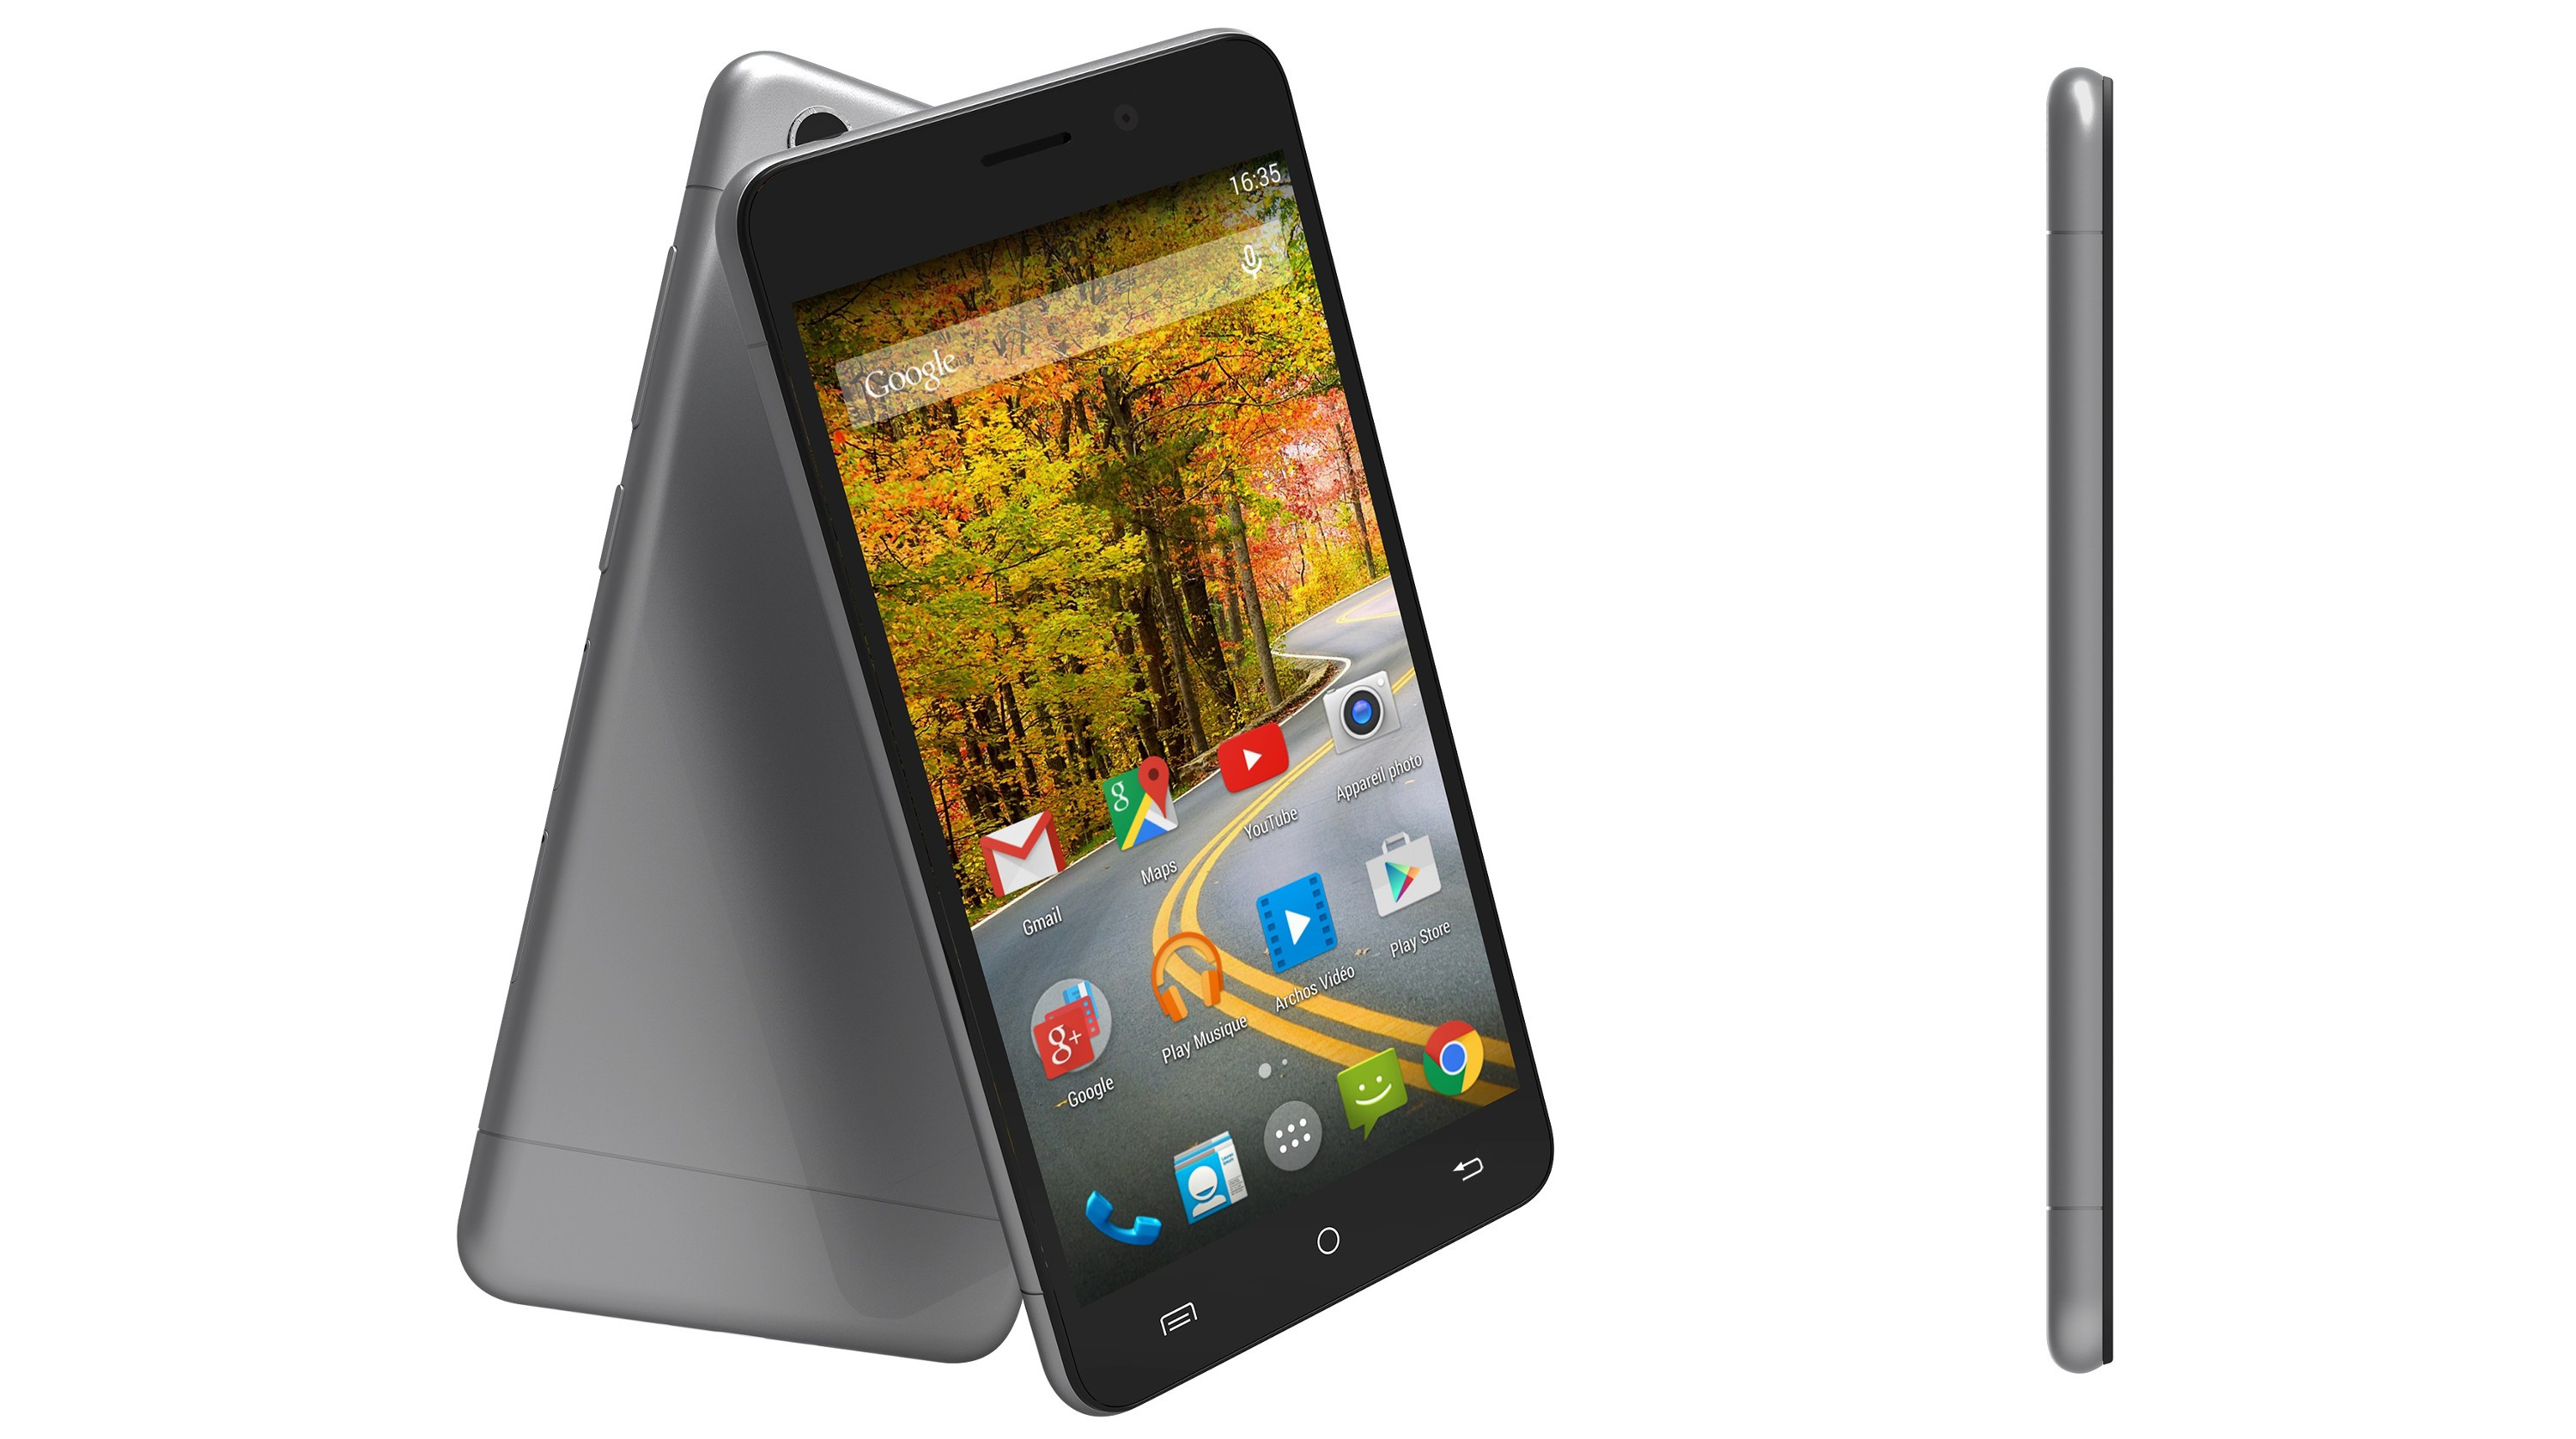 Archos-50-Oxygen-Plus-High-End-Smartphone-Officially-Unveiled-474403-2